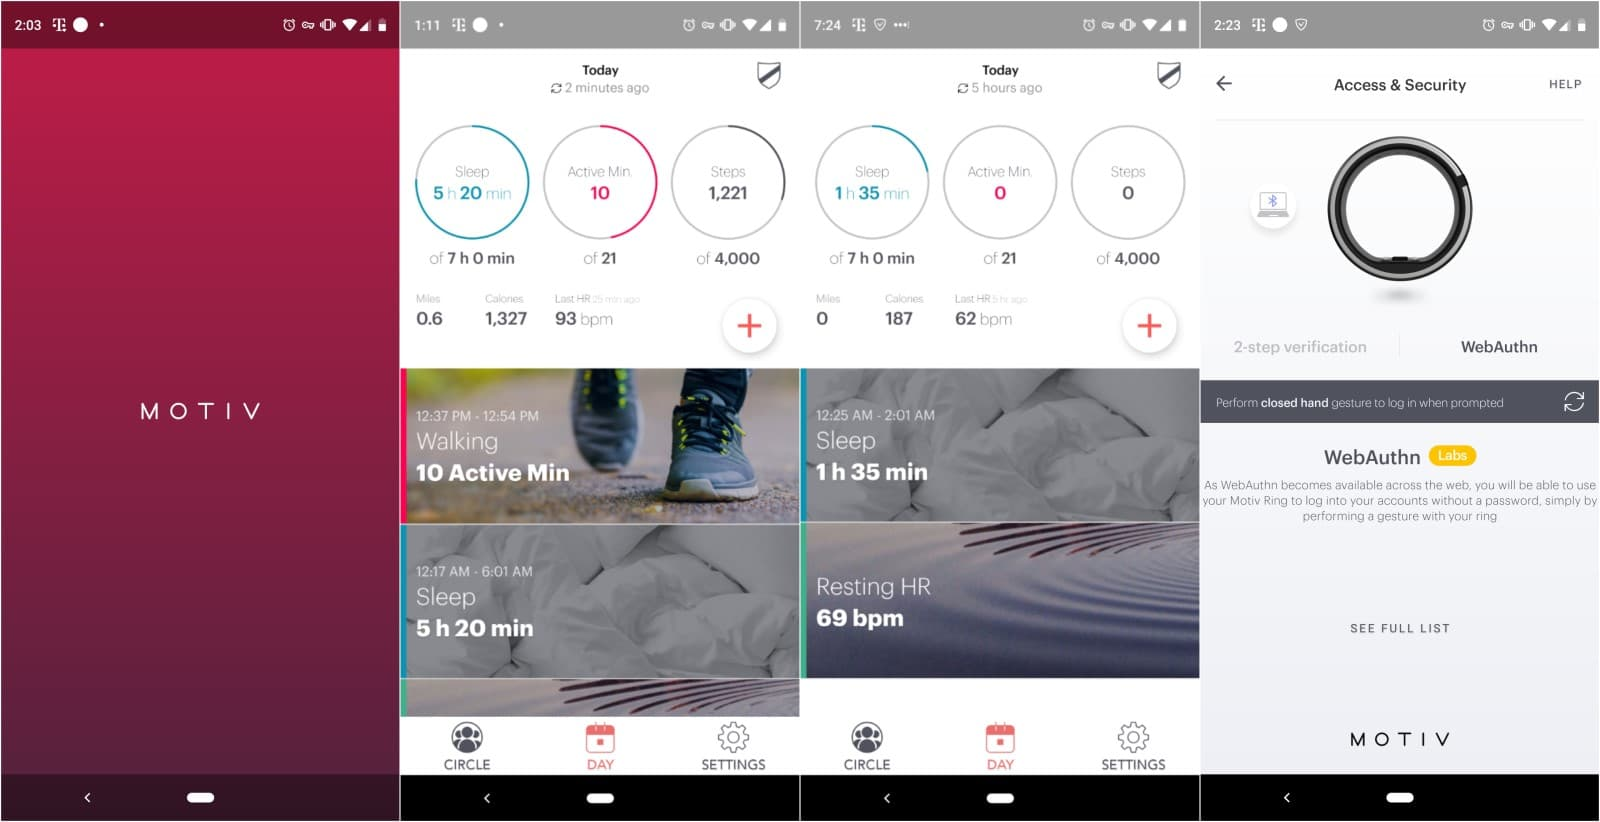 motiv fitness tracking ring app screenshots